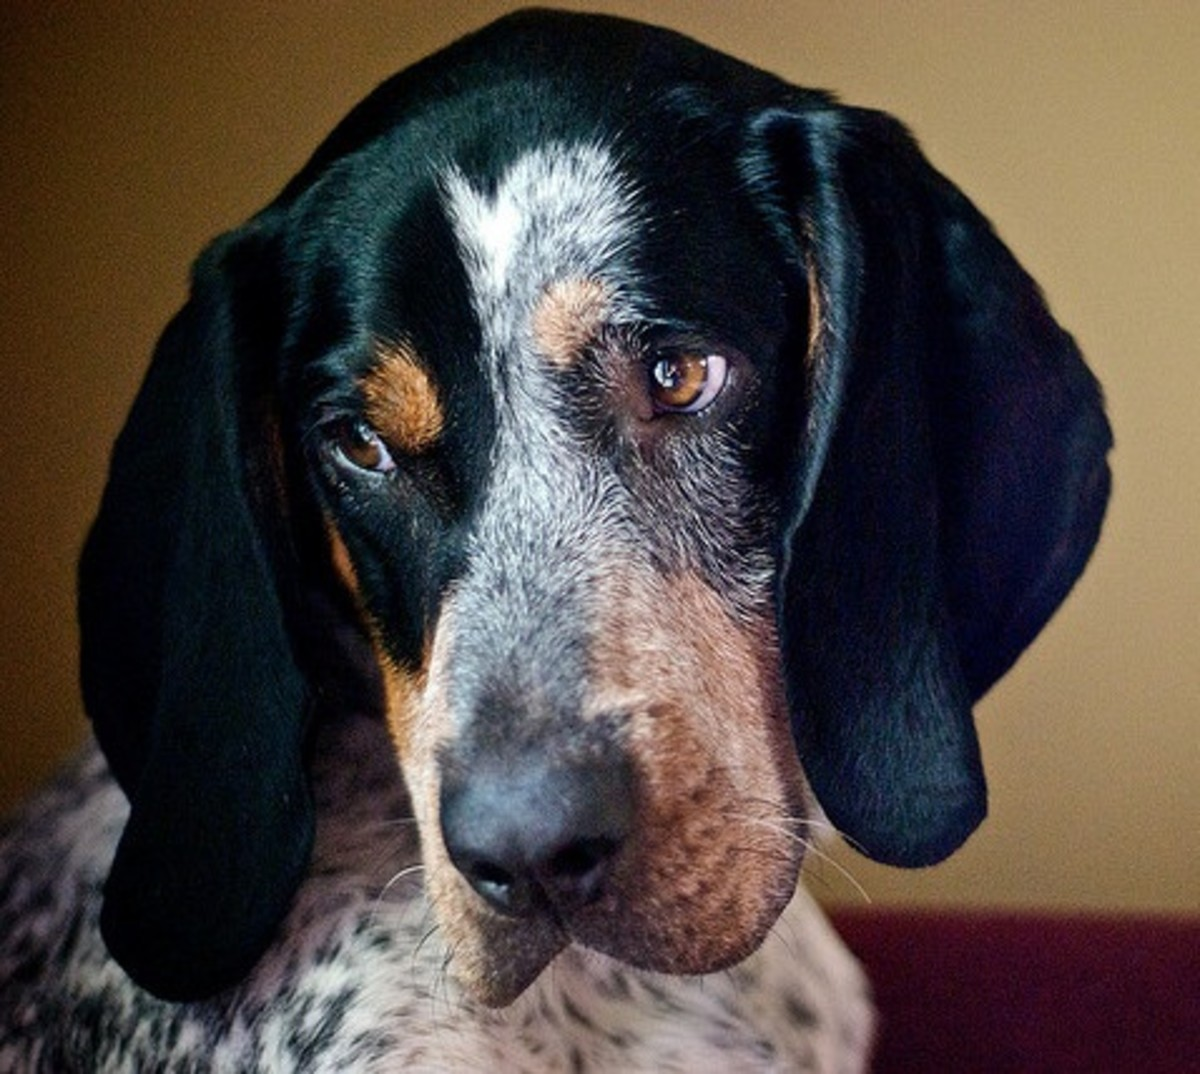 Bluetick Coonhound looking thoughtful.